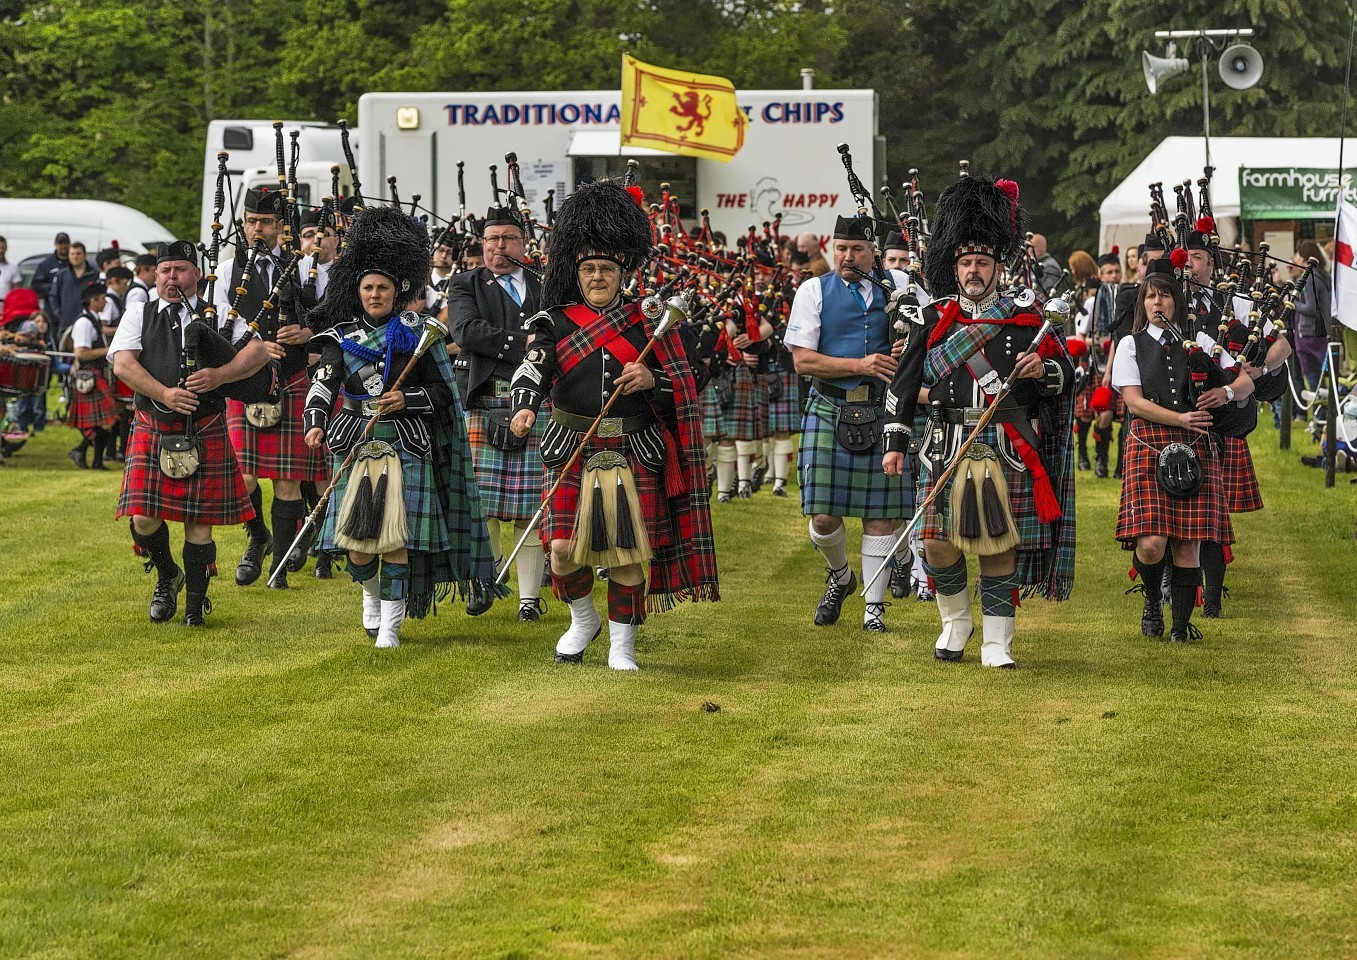 Thousands turned out to enjoy Gordon Castle Highland Games